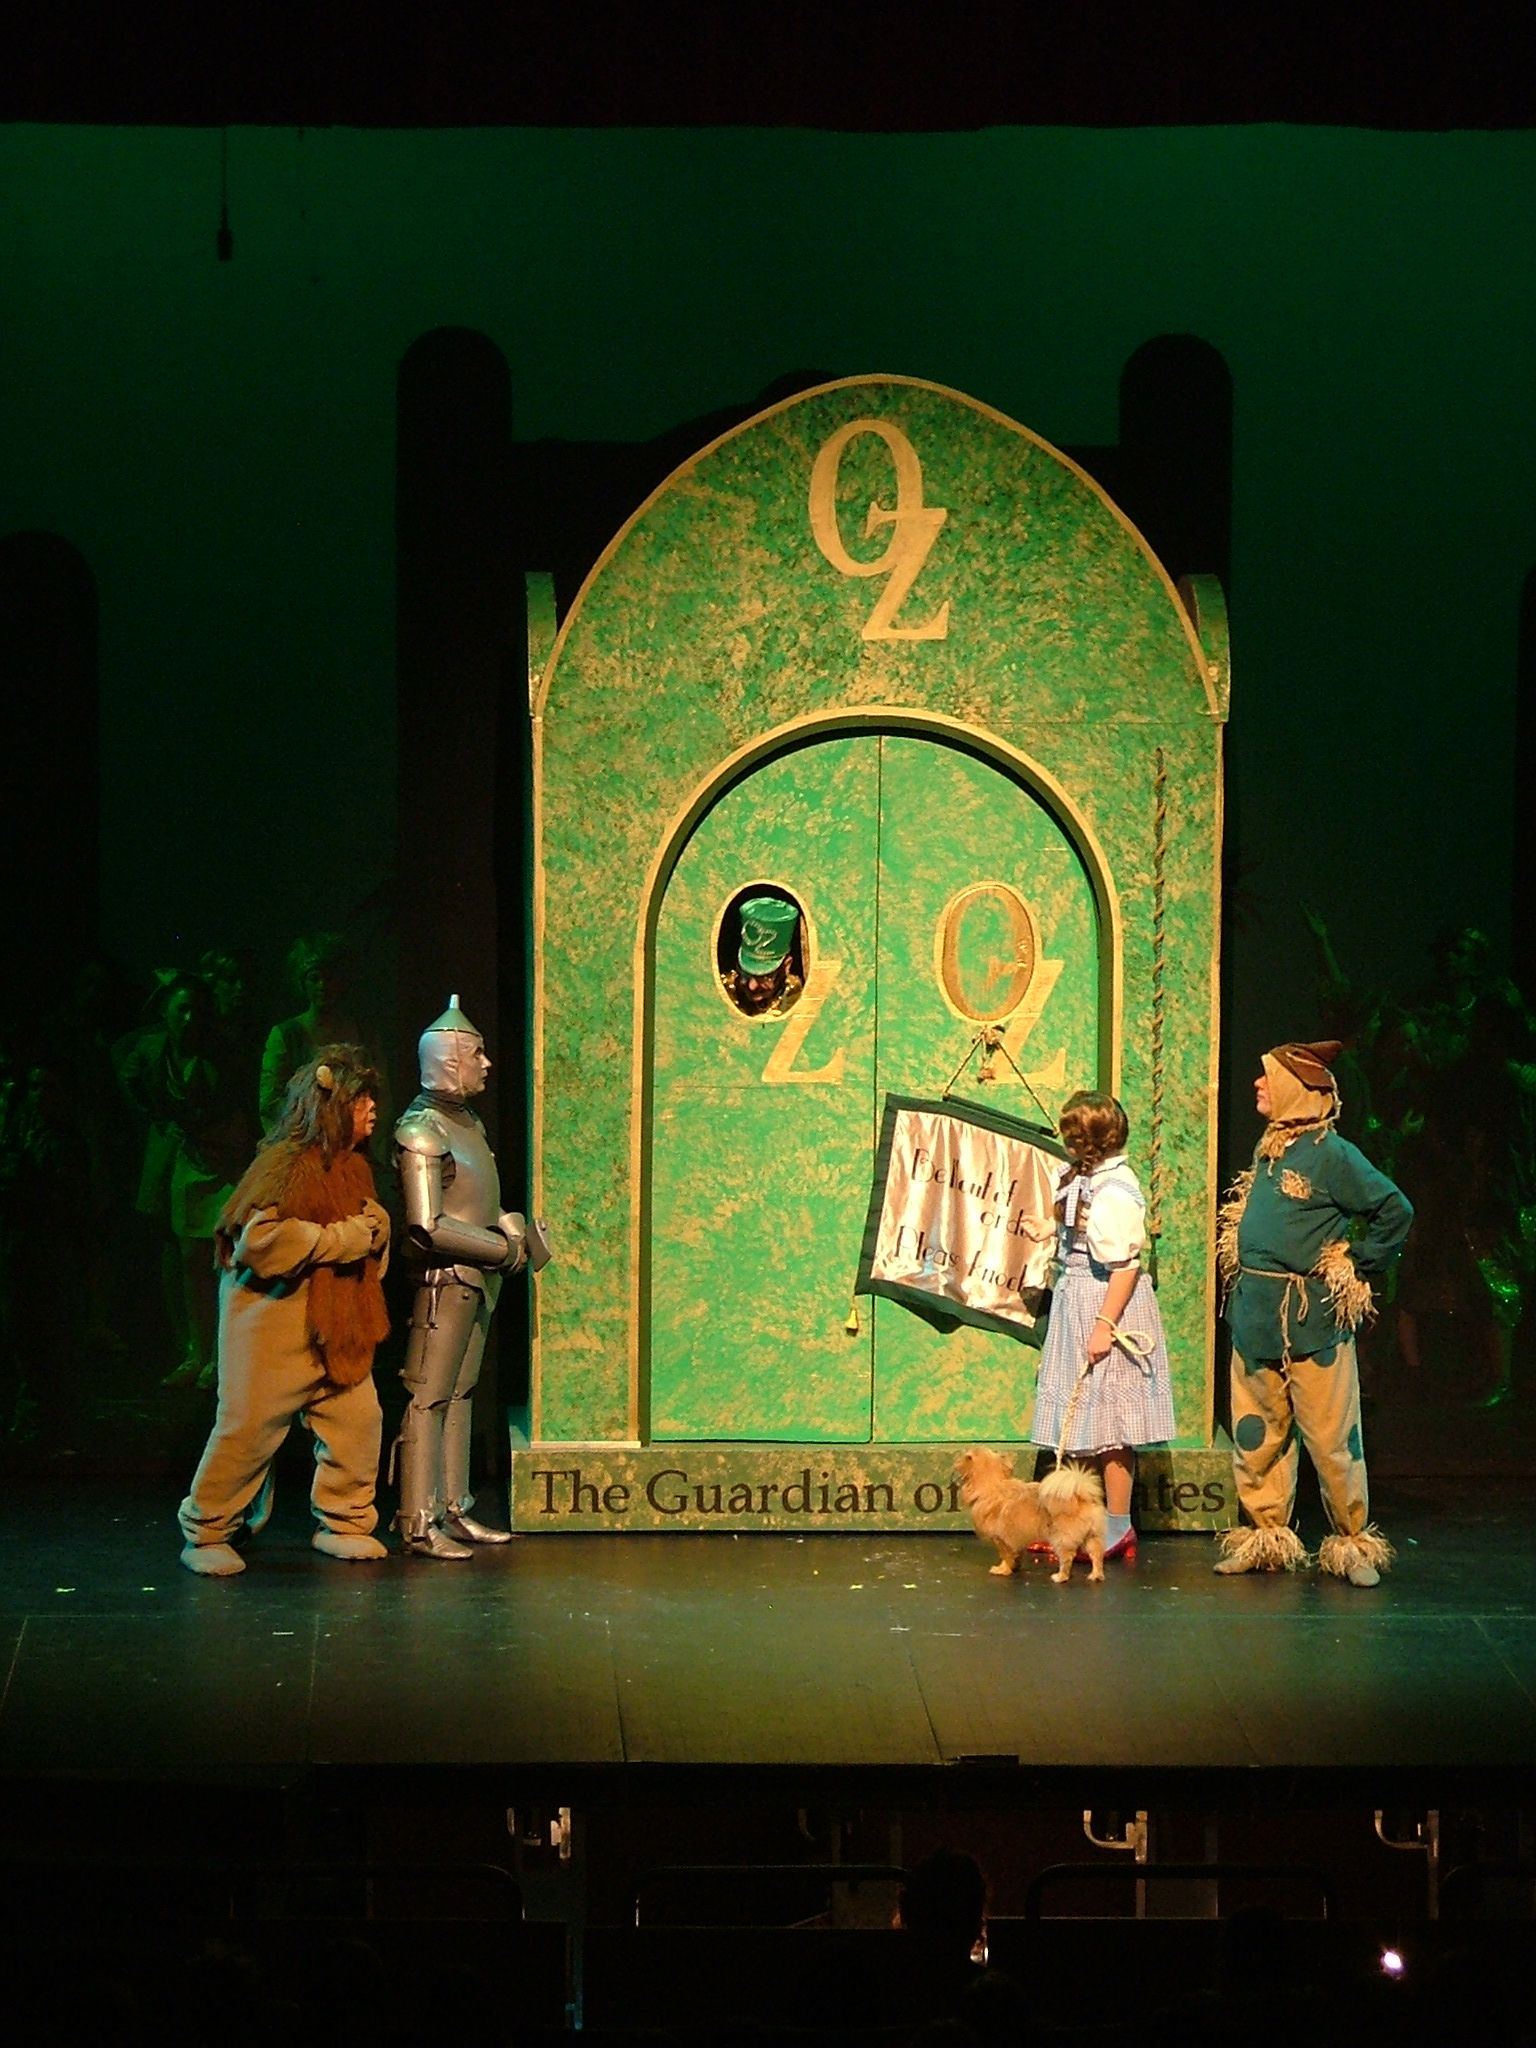 The Wizard of Oz: Key to Oz, the Emerald City | Emerald city, The ...